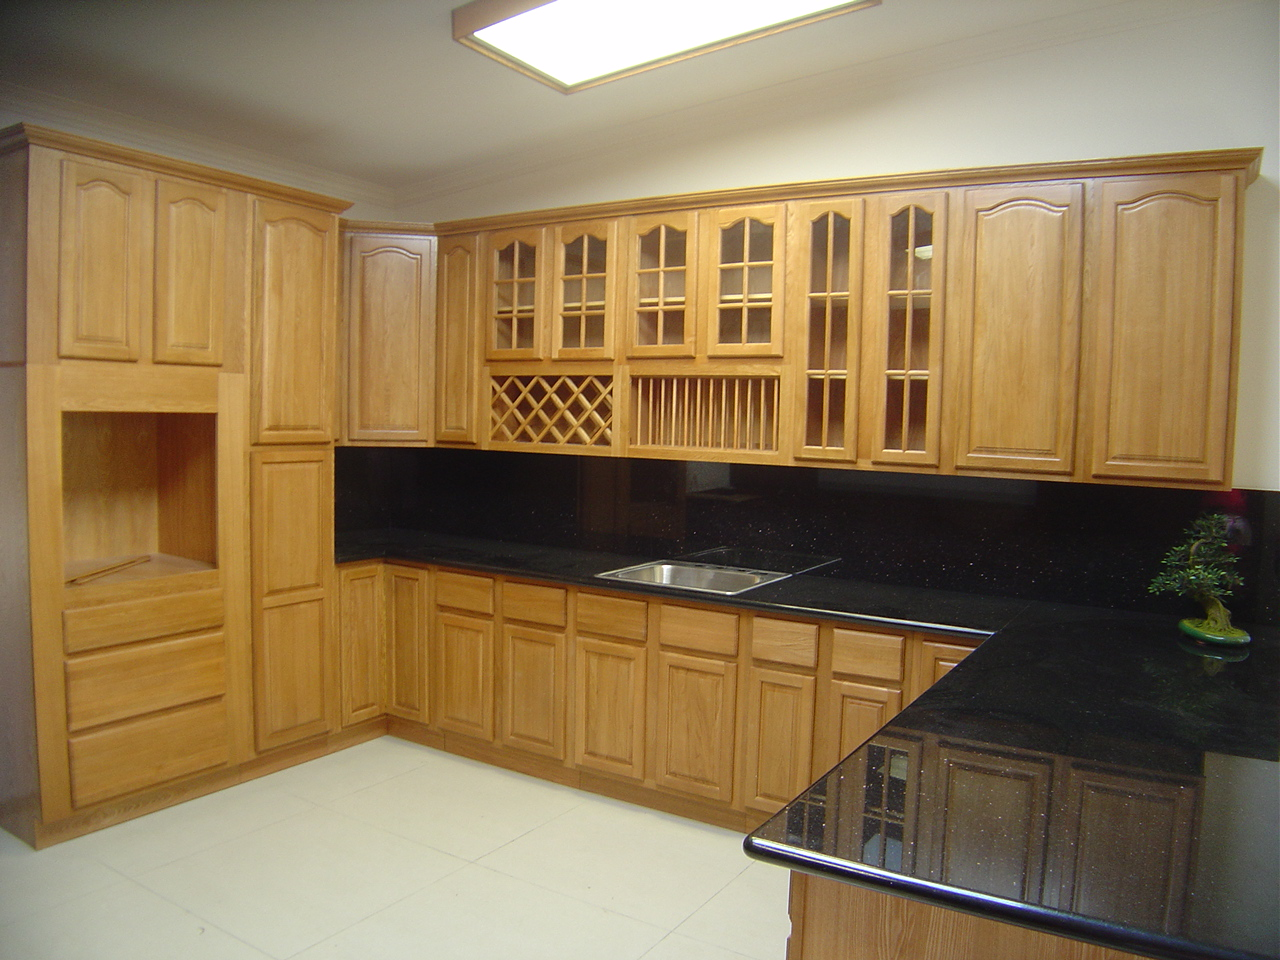 Astonishing Modern Wooden Style Kitchen Cabinets Pictures Black Countertops Viahouse Com